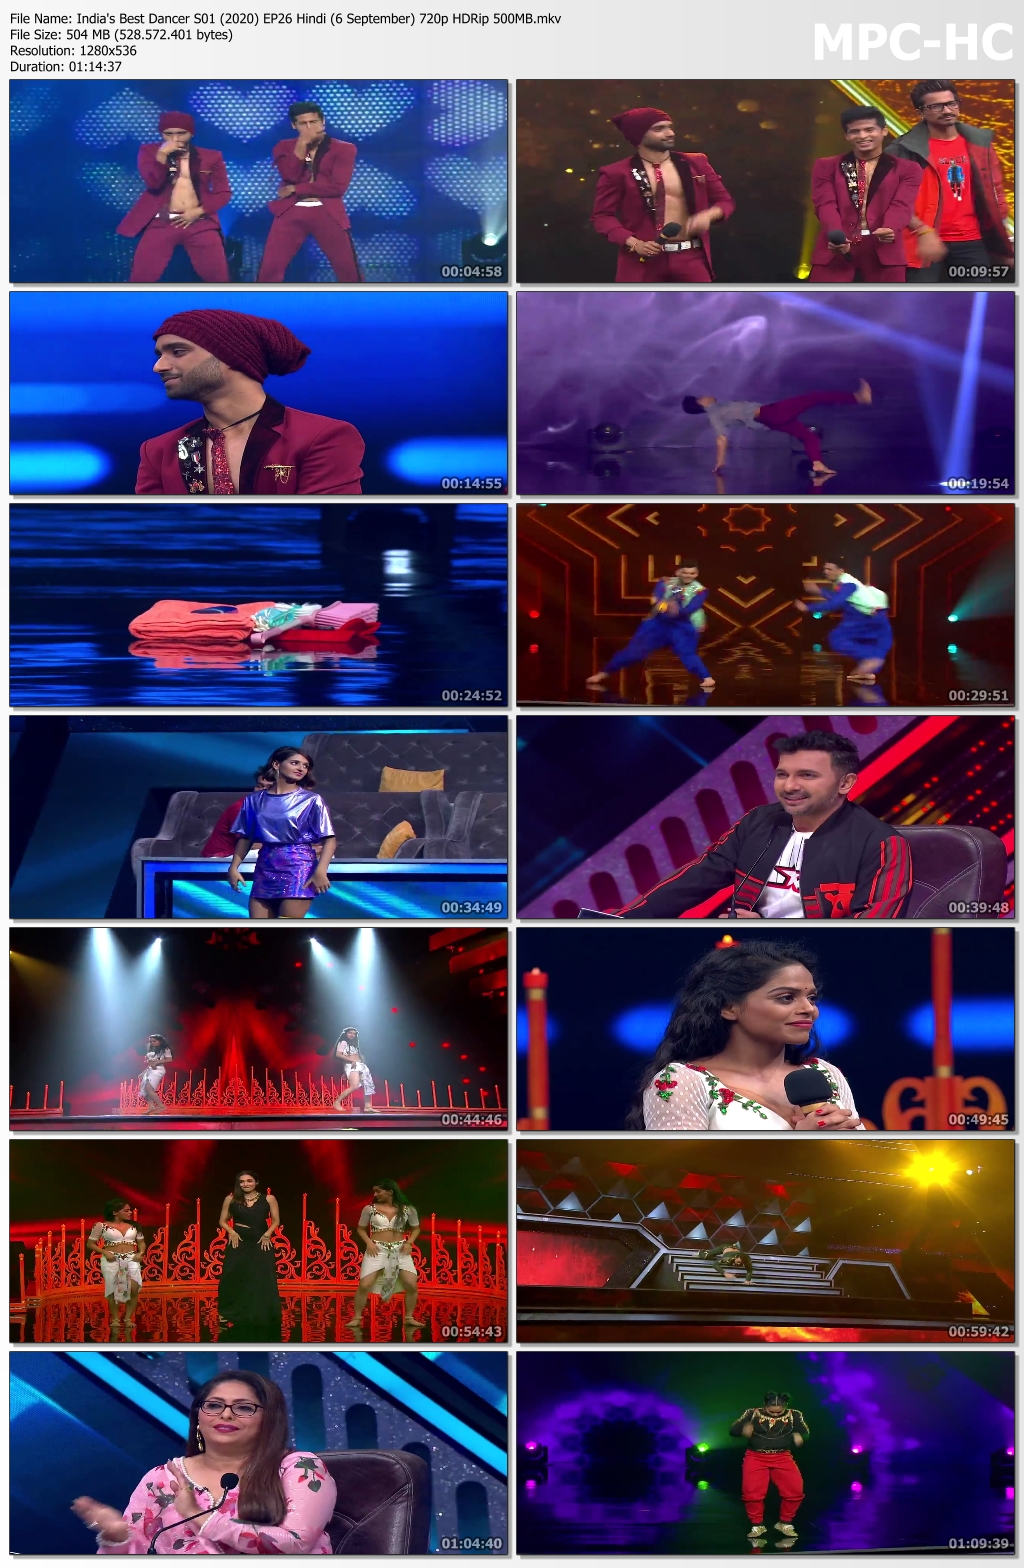 India-s-Best-Dancer-S01-2020-EP26-Hindi-6-September-720p-HDRip-500-MB-mkv-thumbs